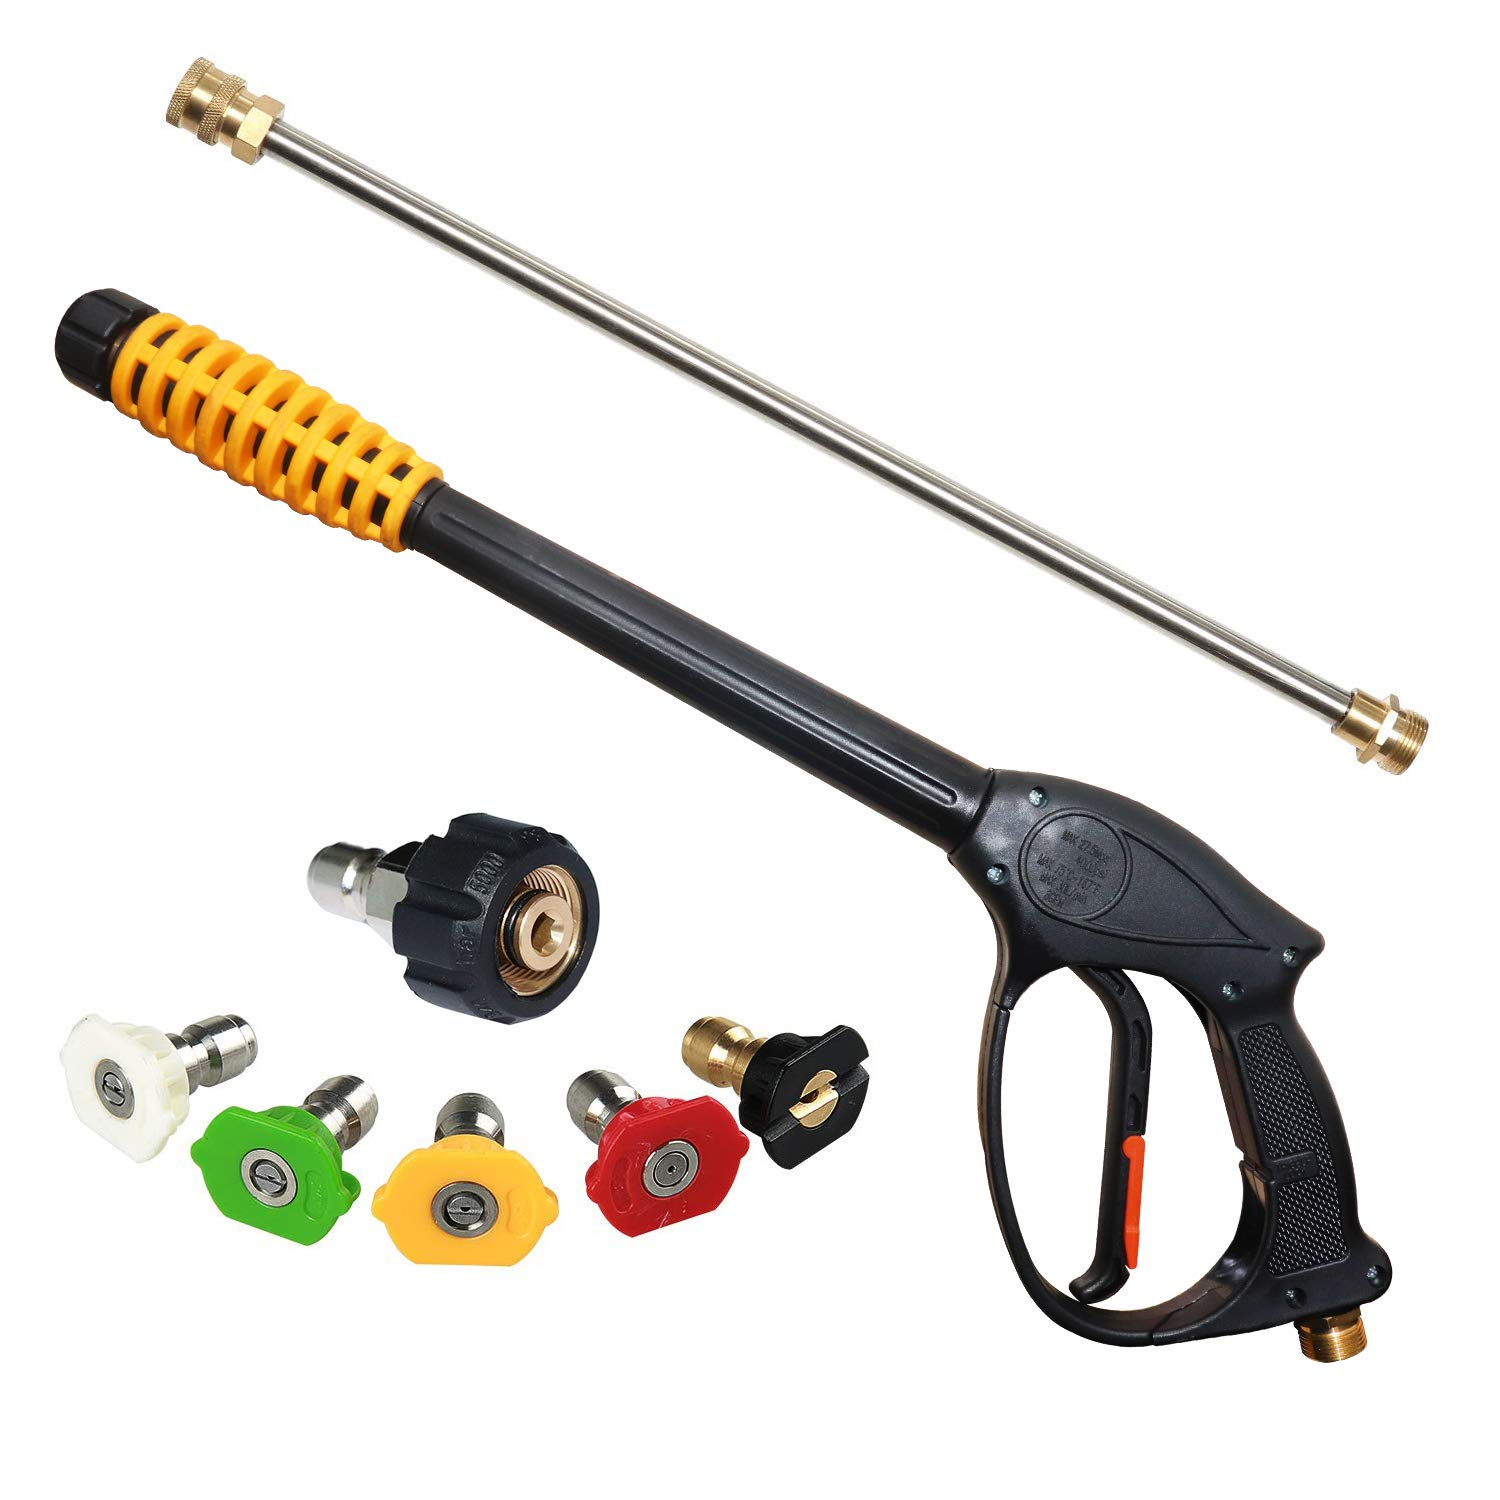 EDOU 4000 PSI High Pressure Power Washer Gun Power Spray Gun, 19 Inch Extension Replacement Wand Lance, 5 Quick Connect Spray Nozzles Tips by EDOU